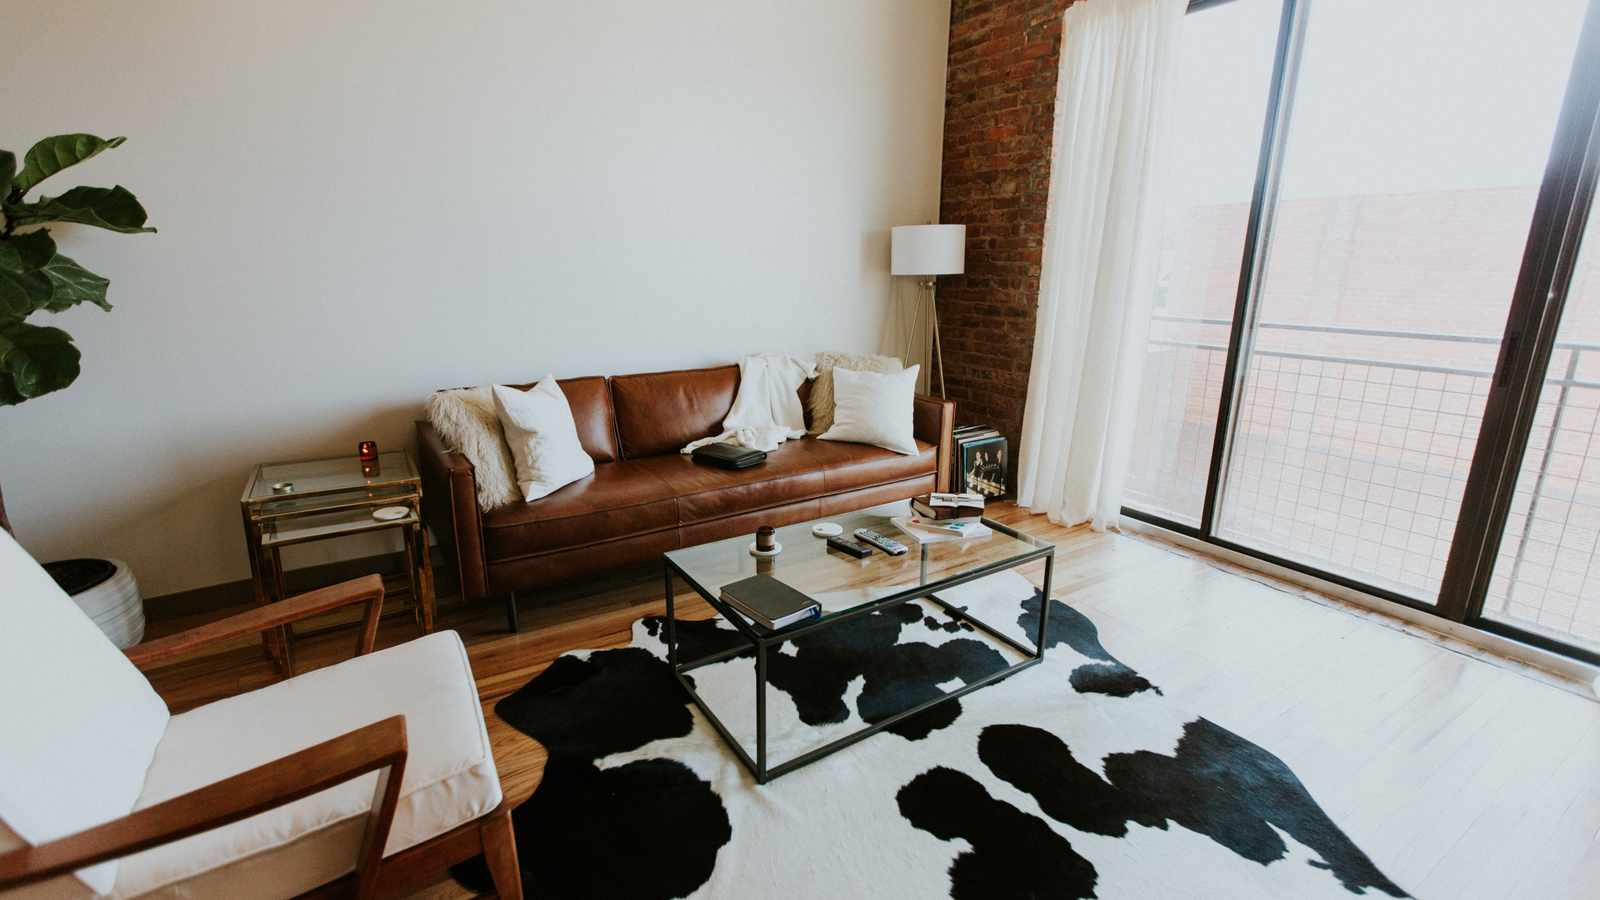 How to Clean Leather Couches, Chairs, and Other Furniture